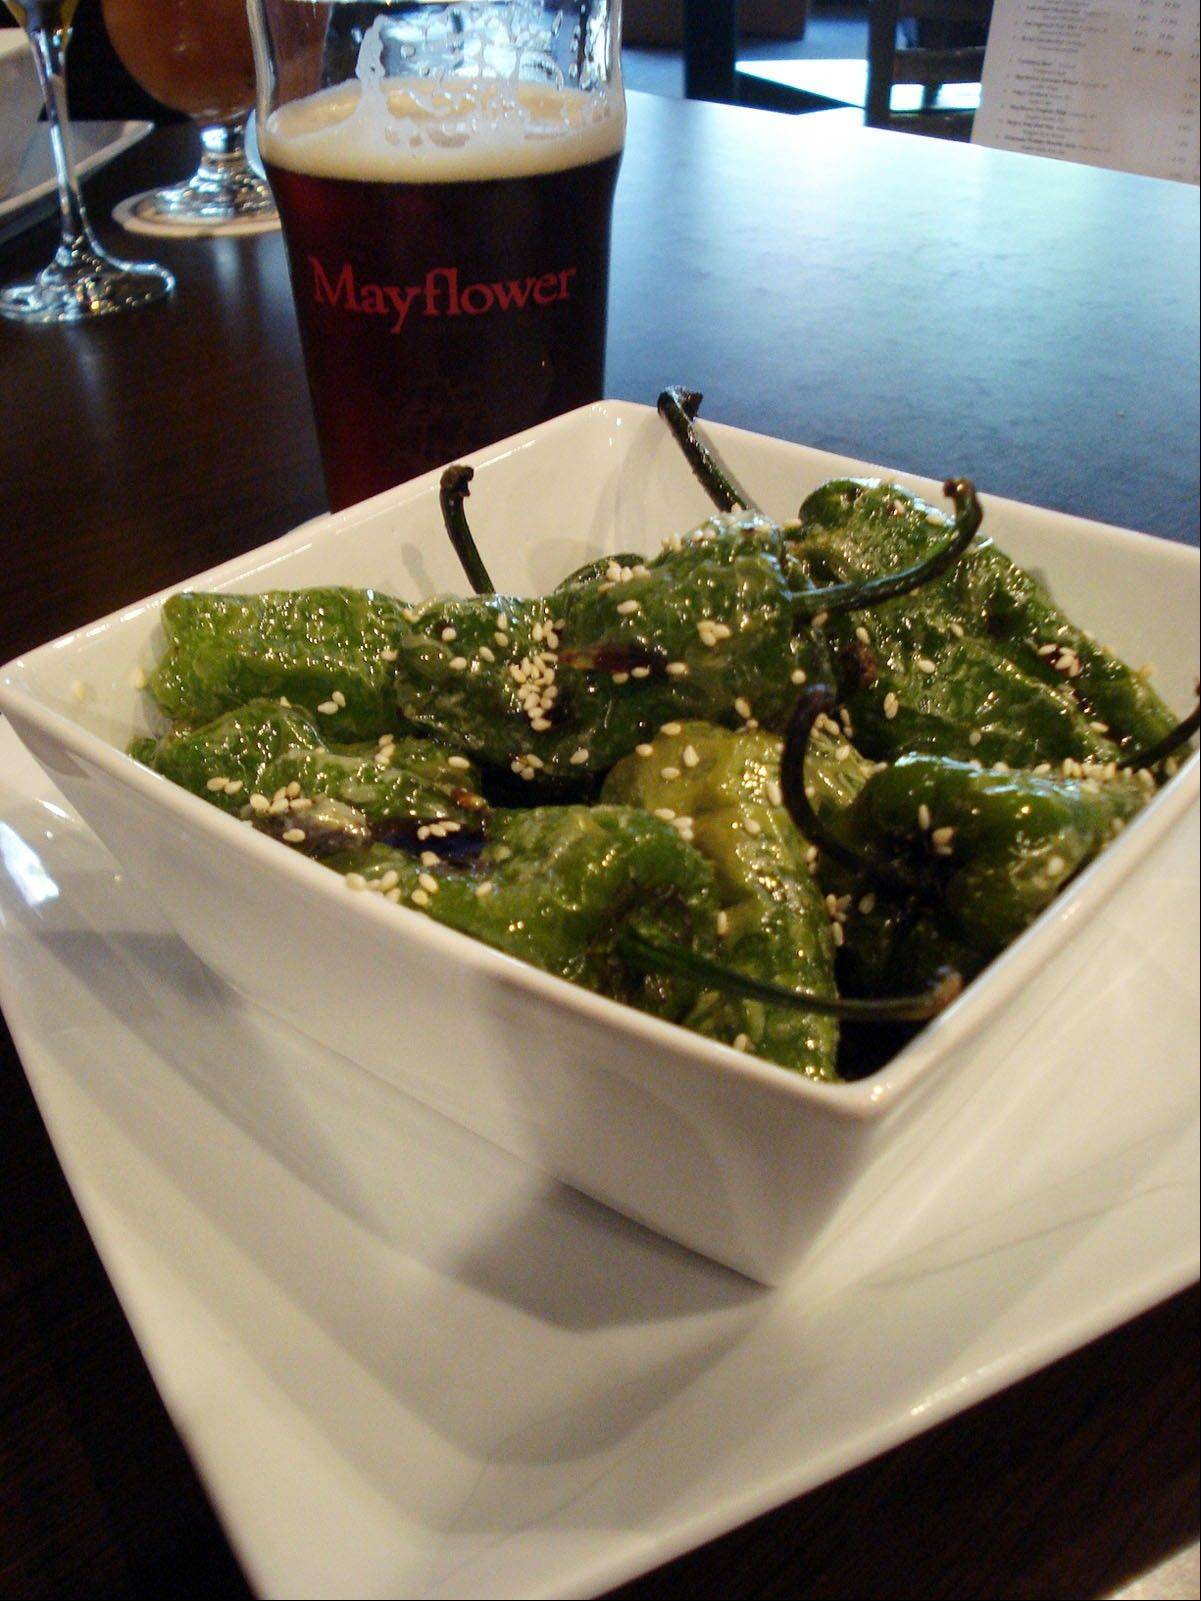 Imaginative alternatives to pub grub at The New World Tavern include flash-fried Padron peppers glazed with kabayaki.